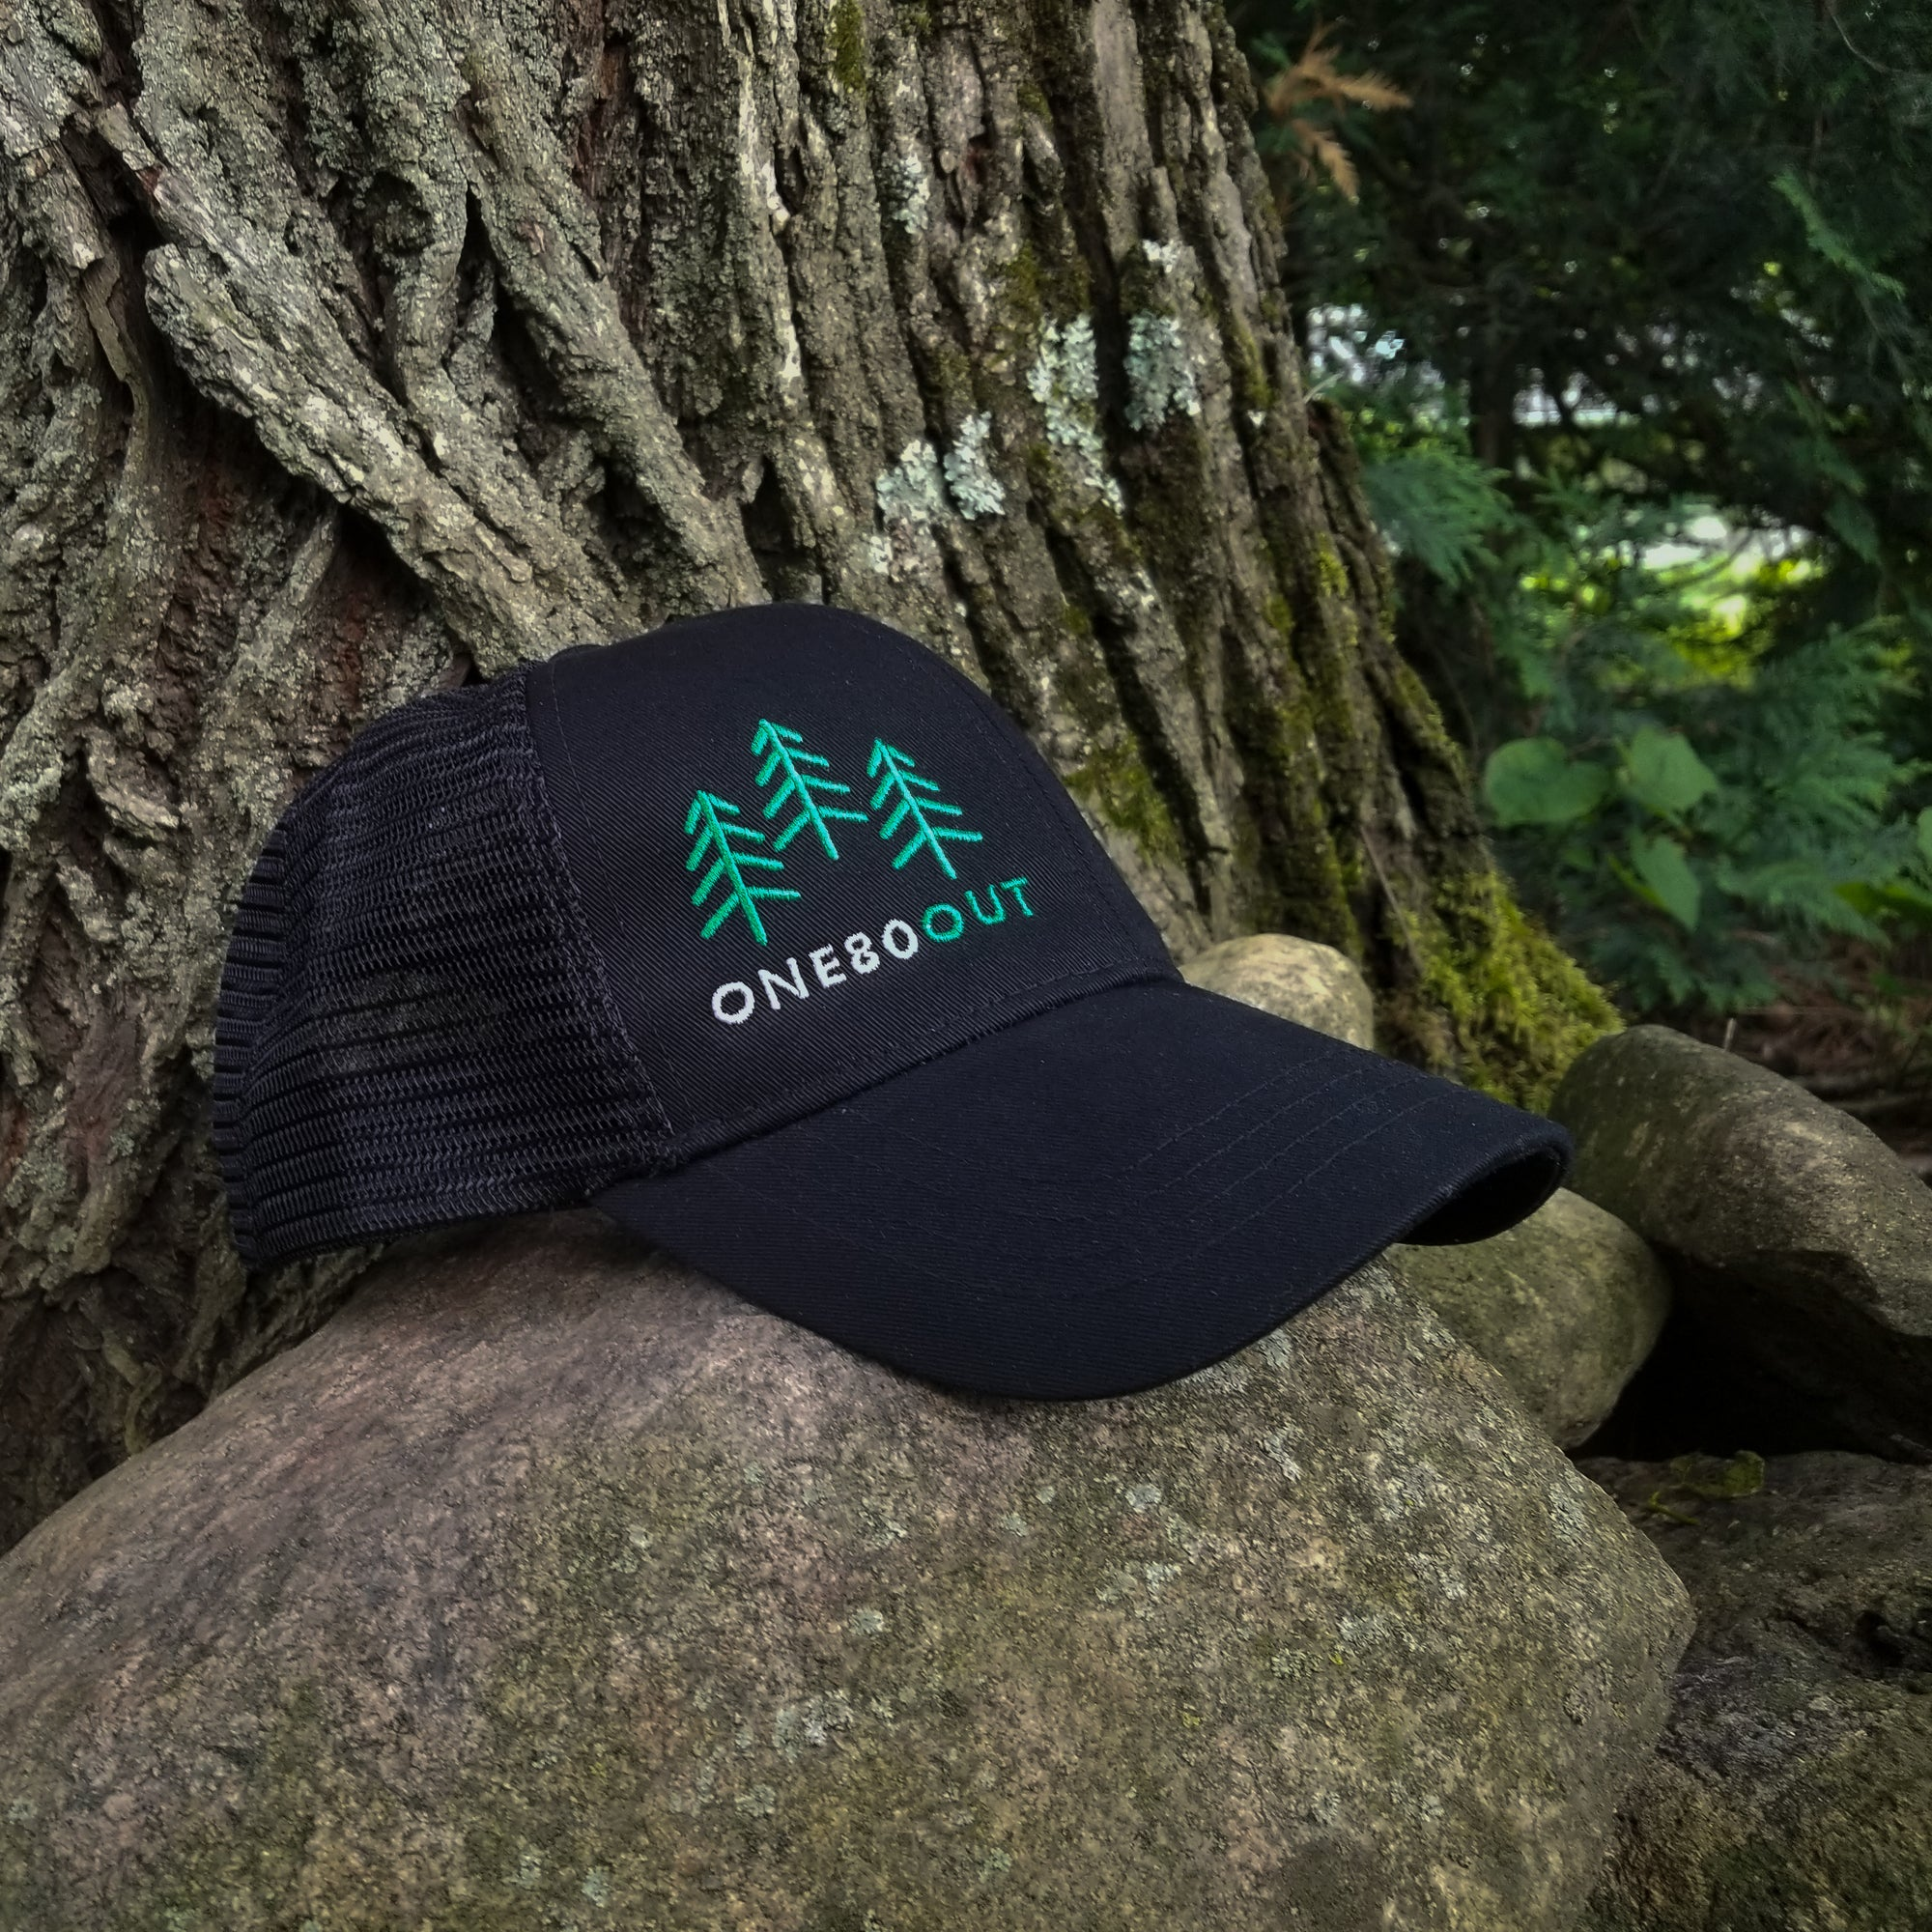 3 Trees Eco-Friendly Trucker Hat